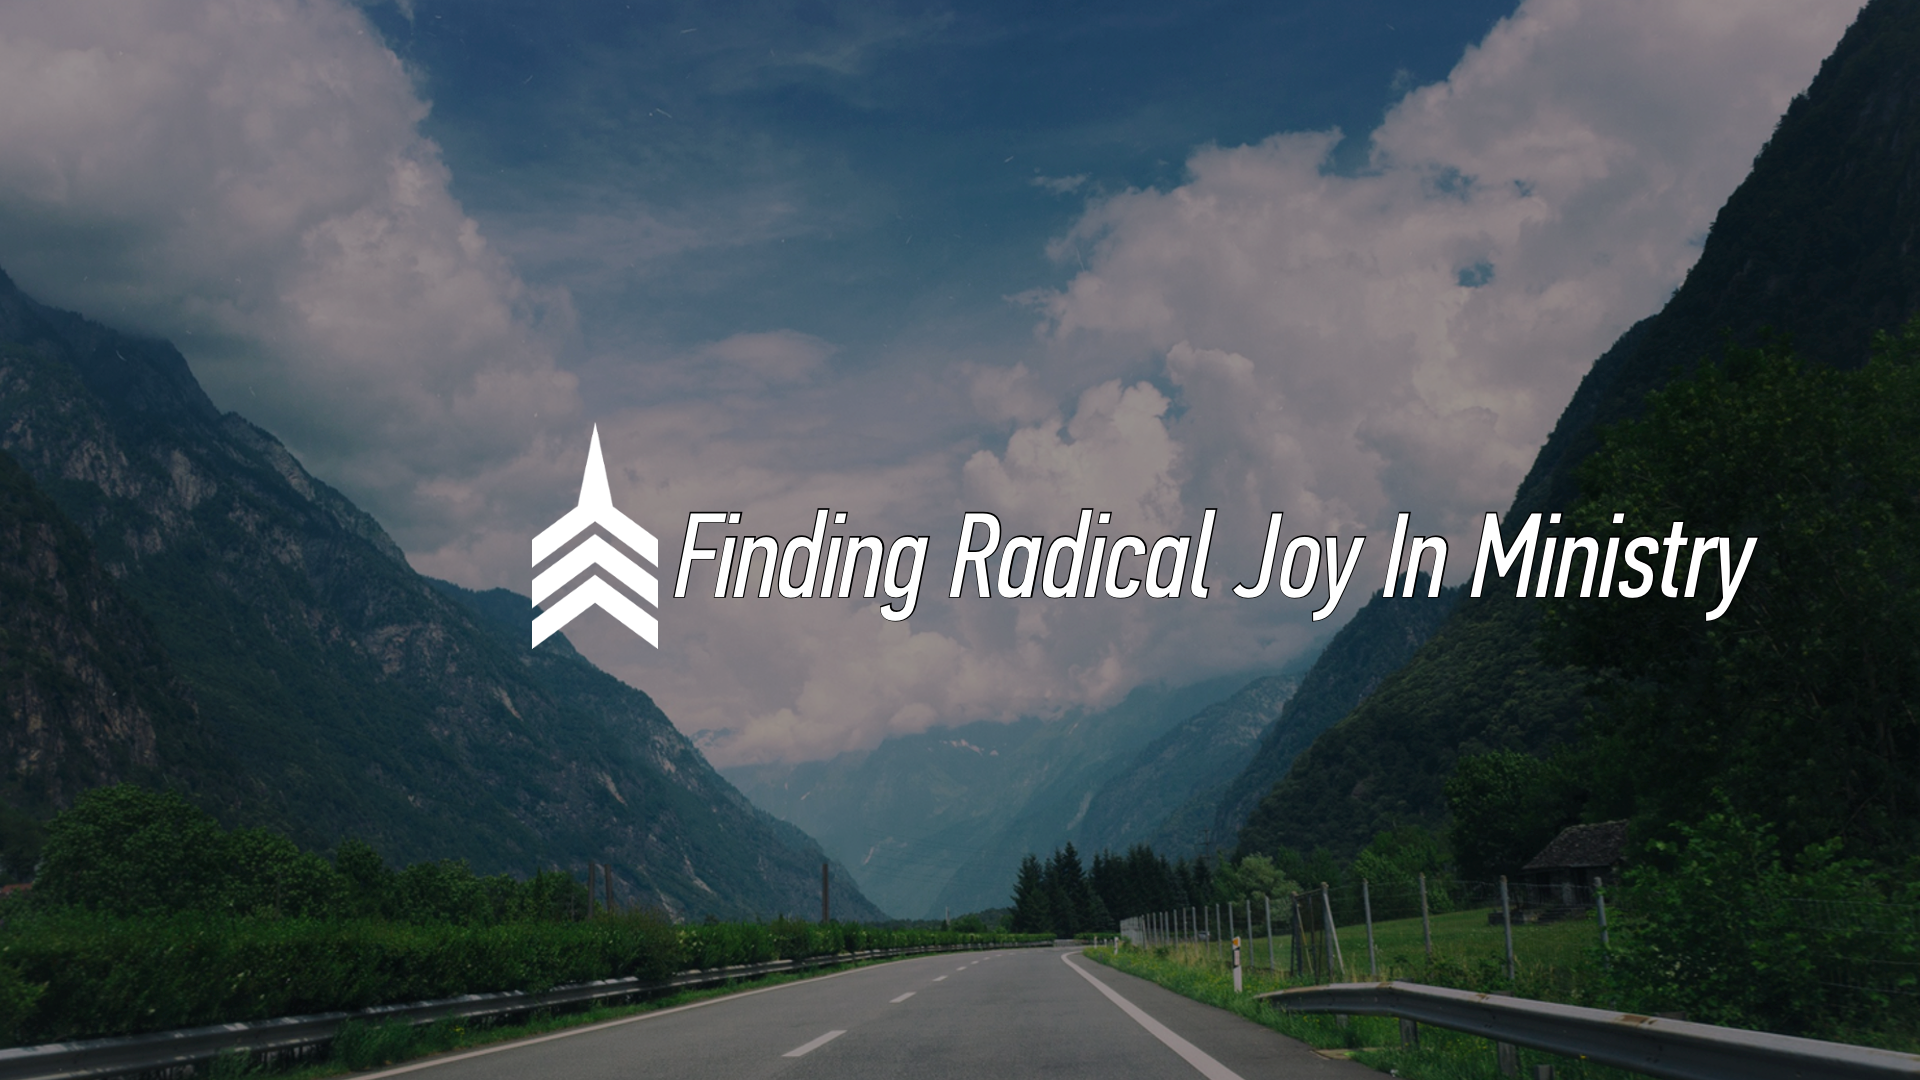 20170312 Finding Radical Joy In Ministry.png